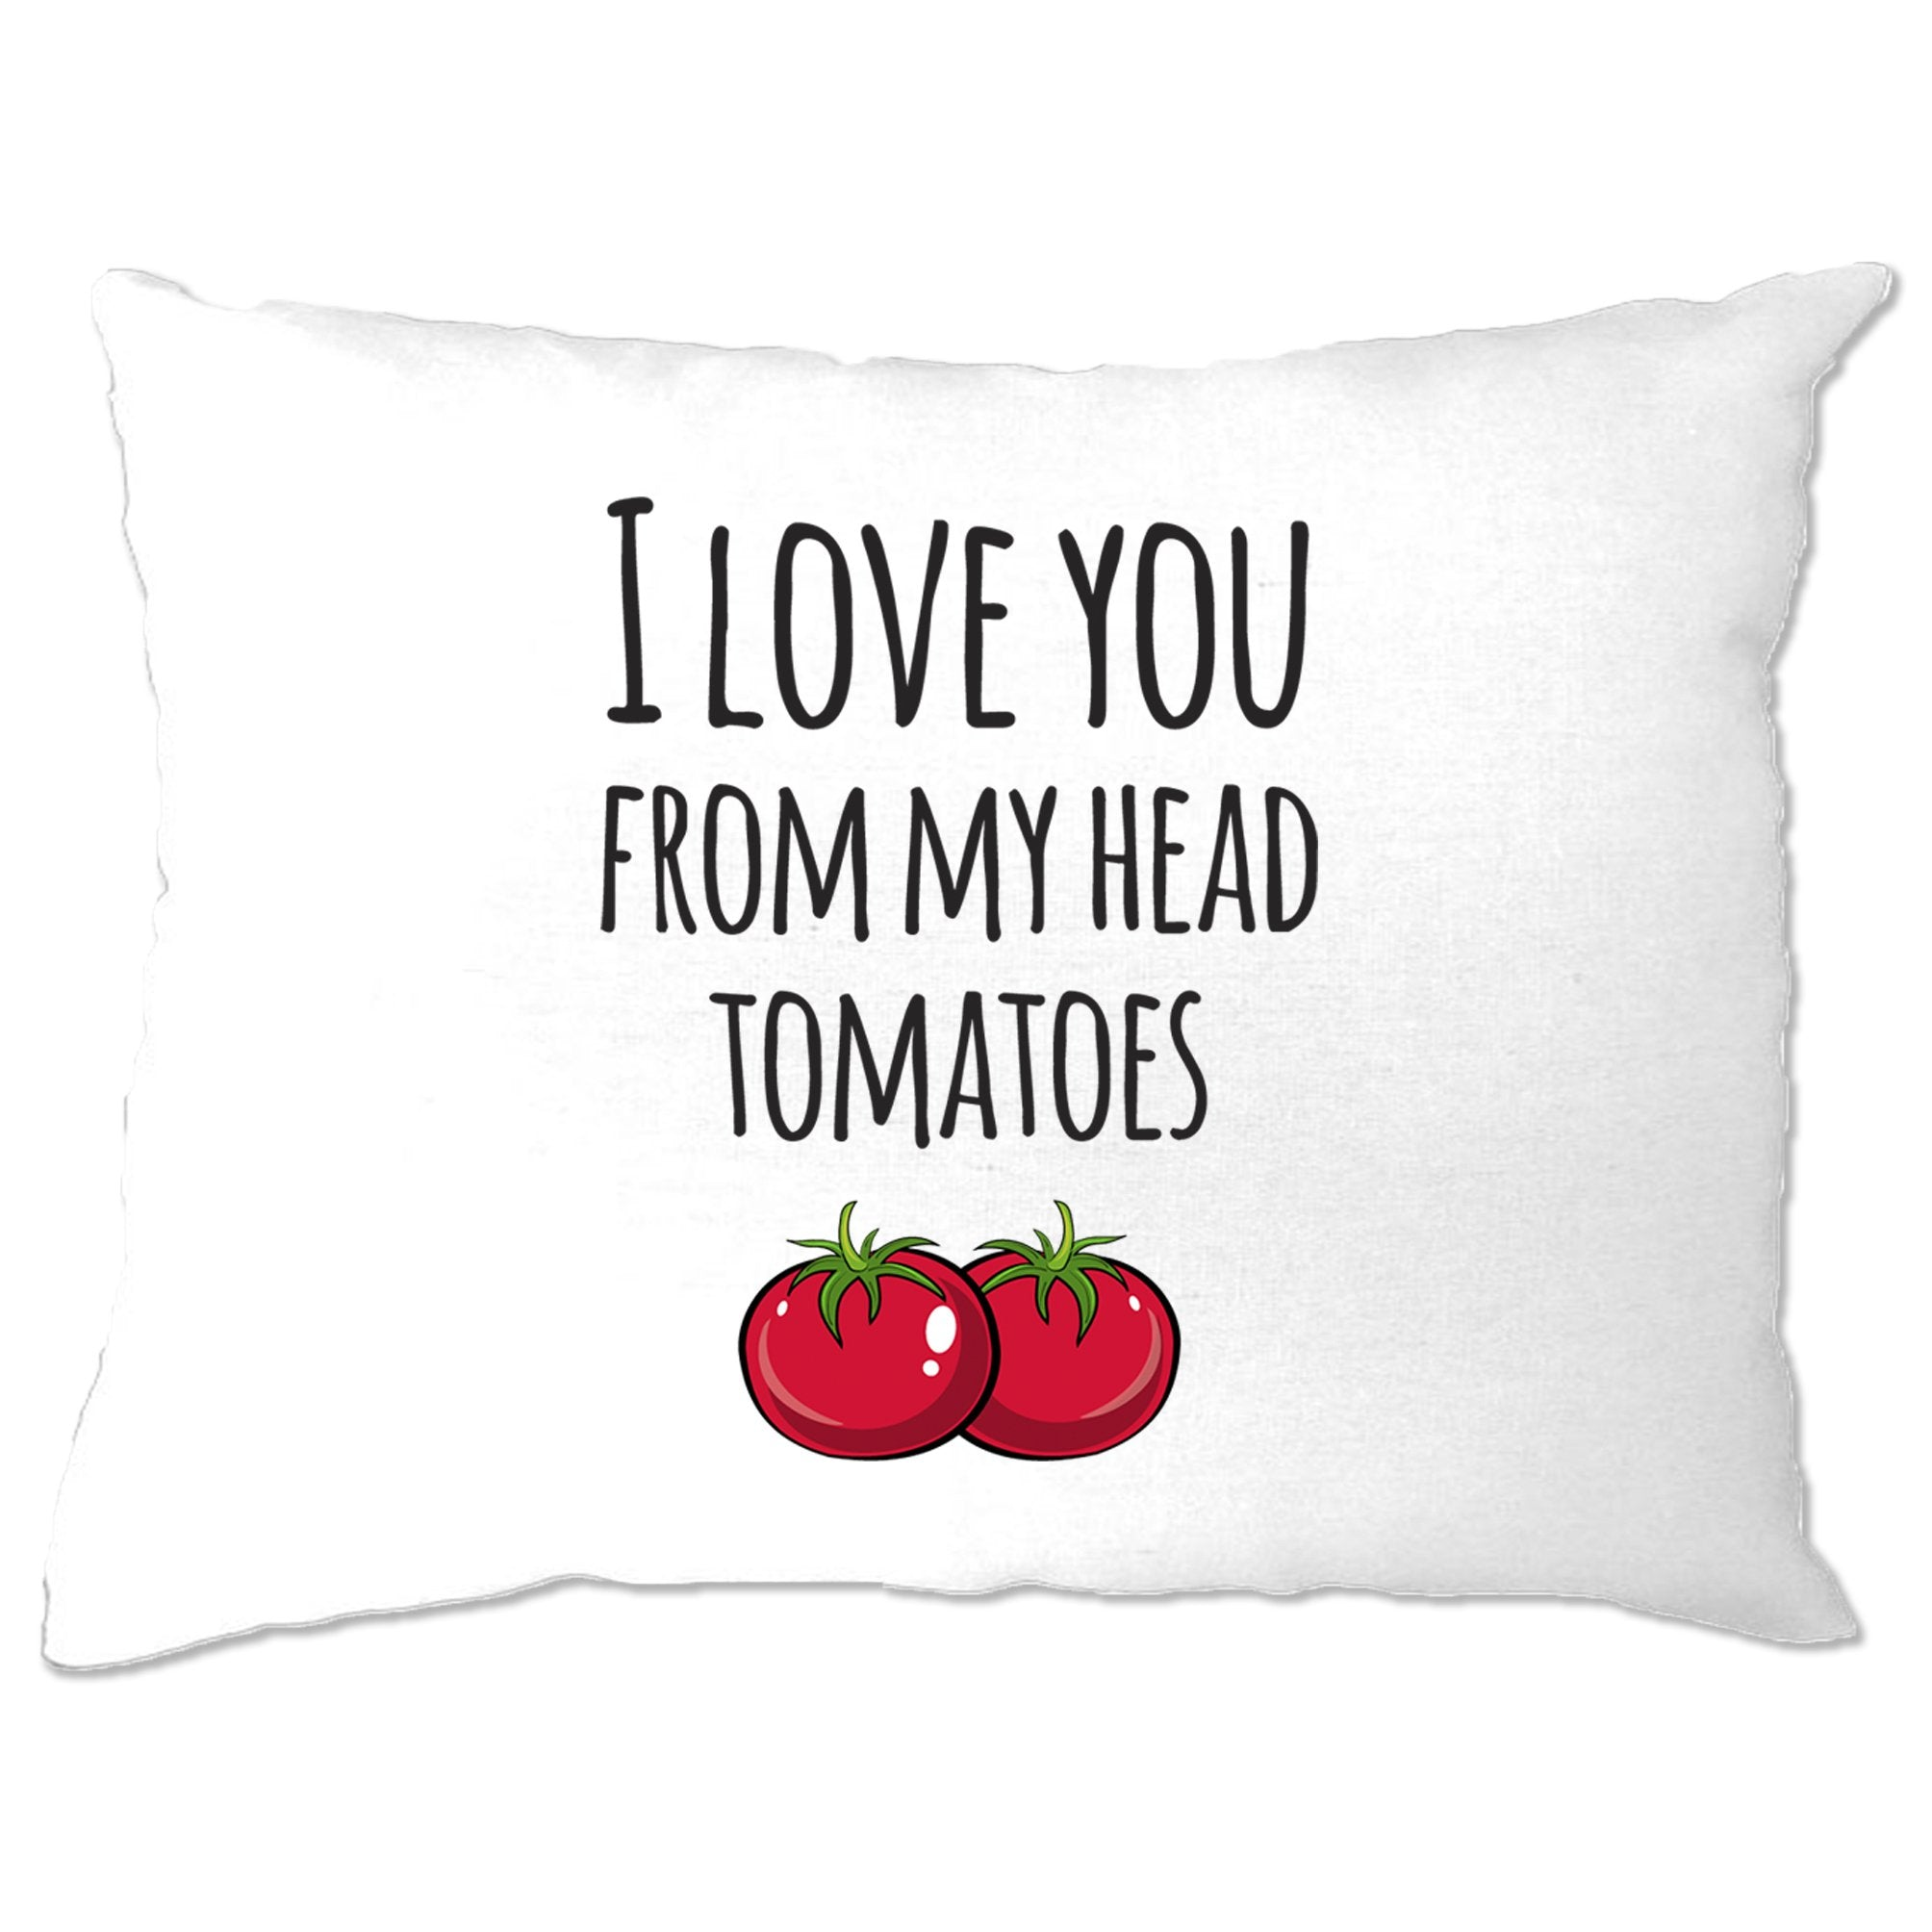 Valentines Pun Pillow Case Love You From My Head Tomatoes